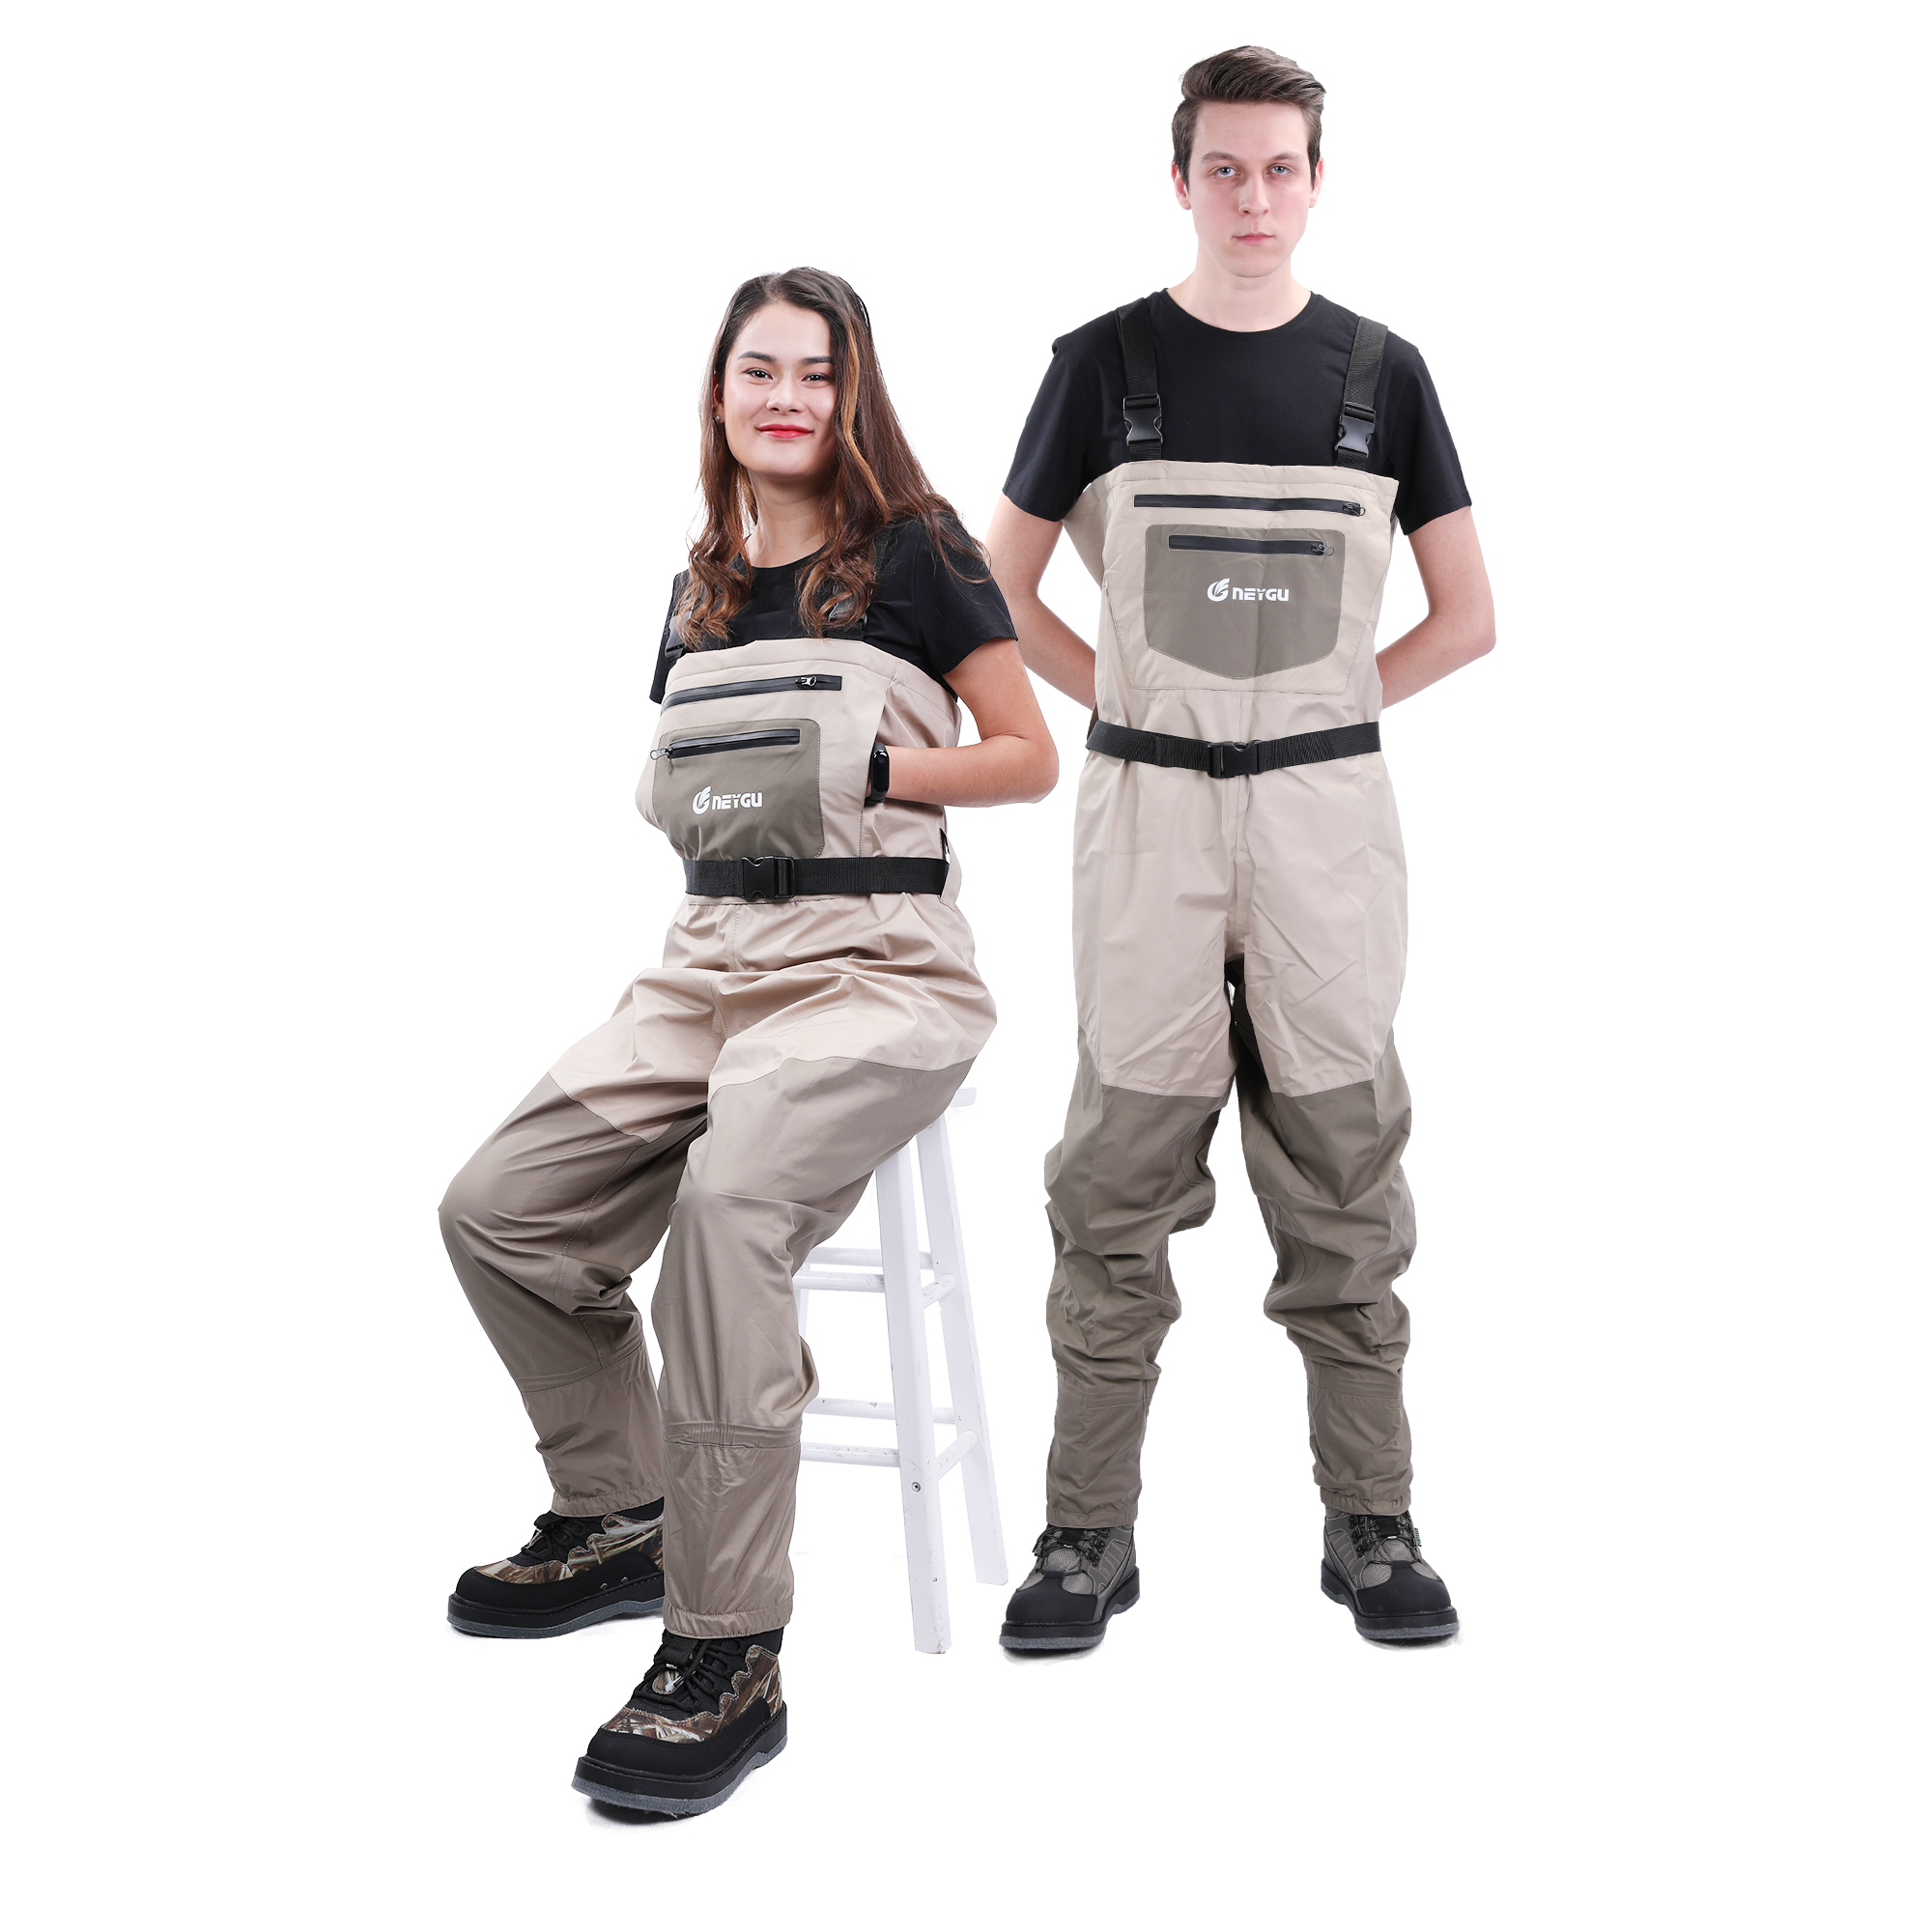 NeyGu Fly Fishing Wader Stocking Foot Chest Waders Breathable Waterproof Pants Water Playing Trousers